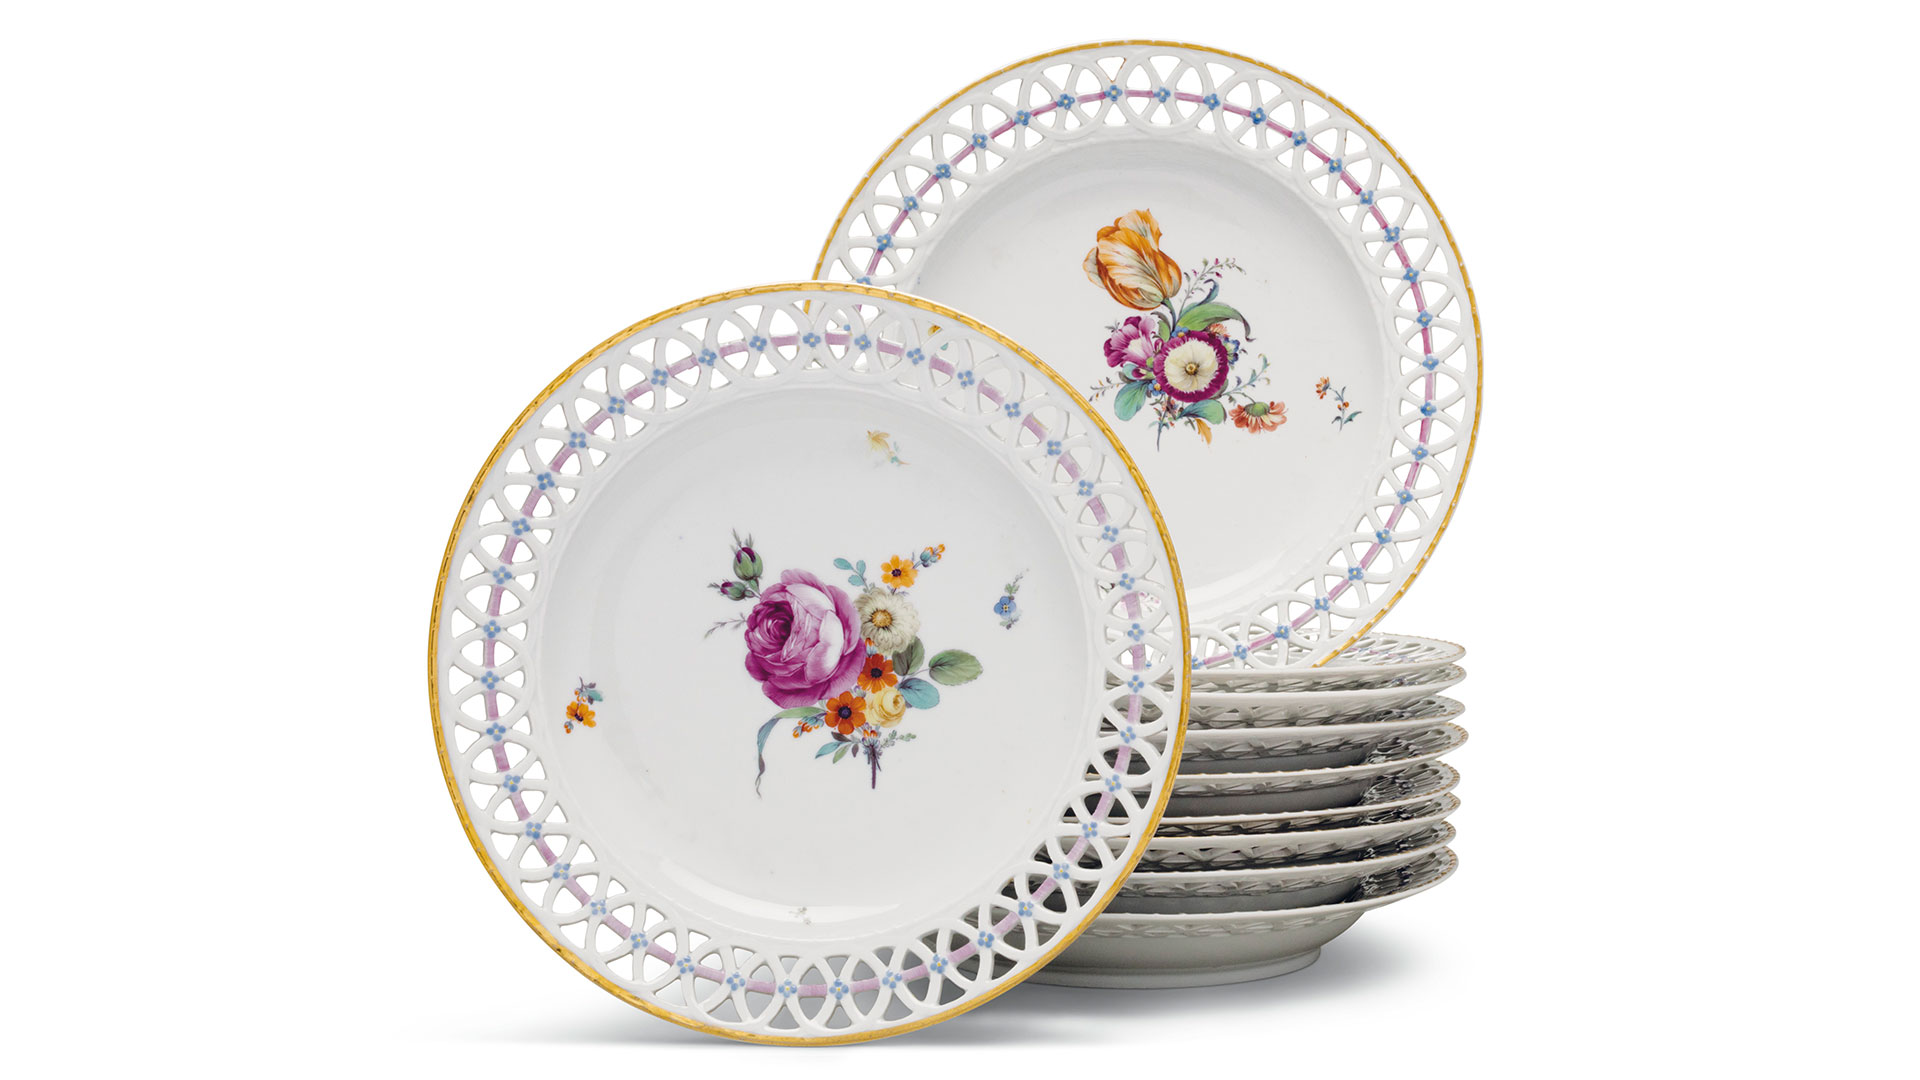 Southern Living Rockefeller Christies Auction Pierced Furstenberg Dessert Plates